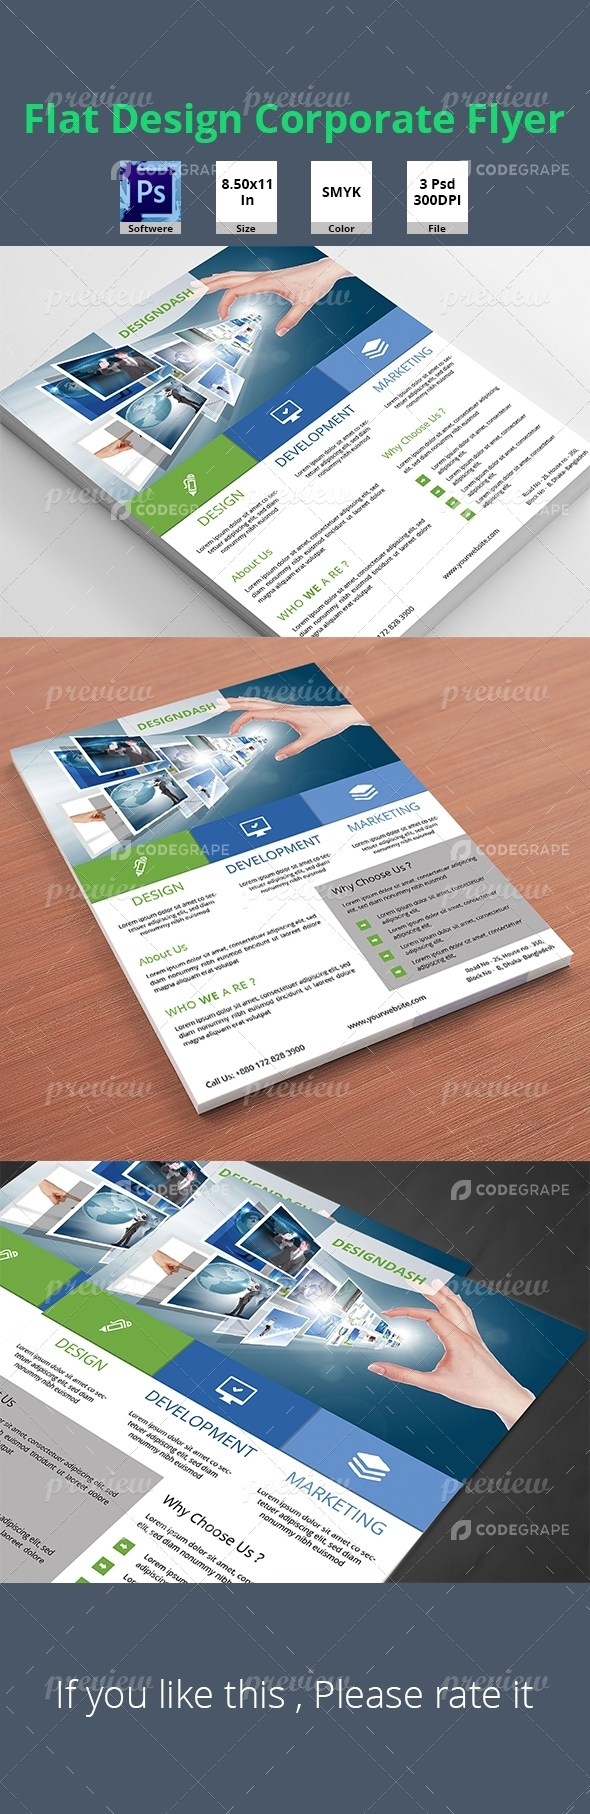 Flat Design Corporate Flyer Vol_2